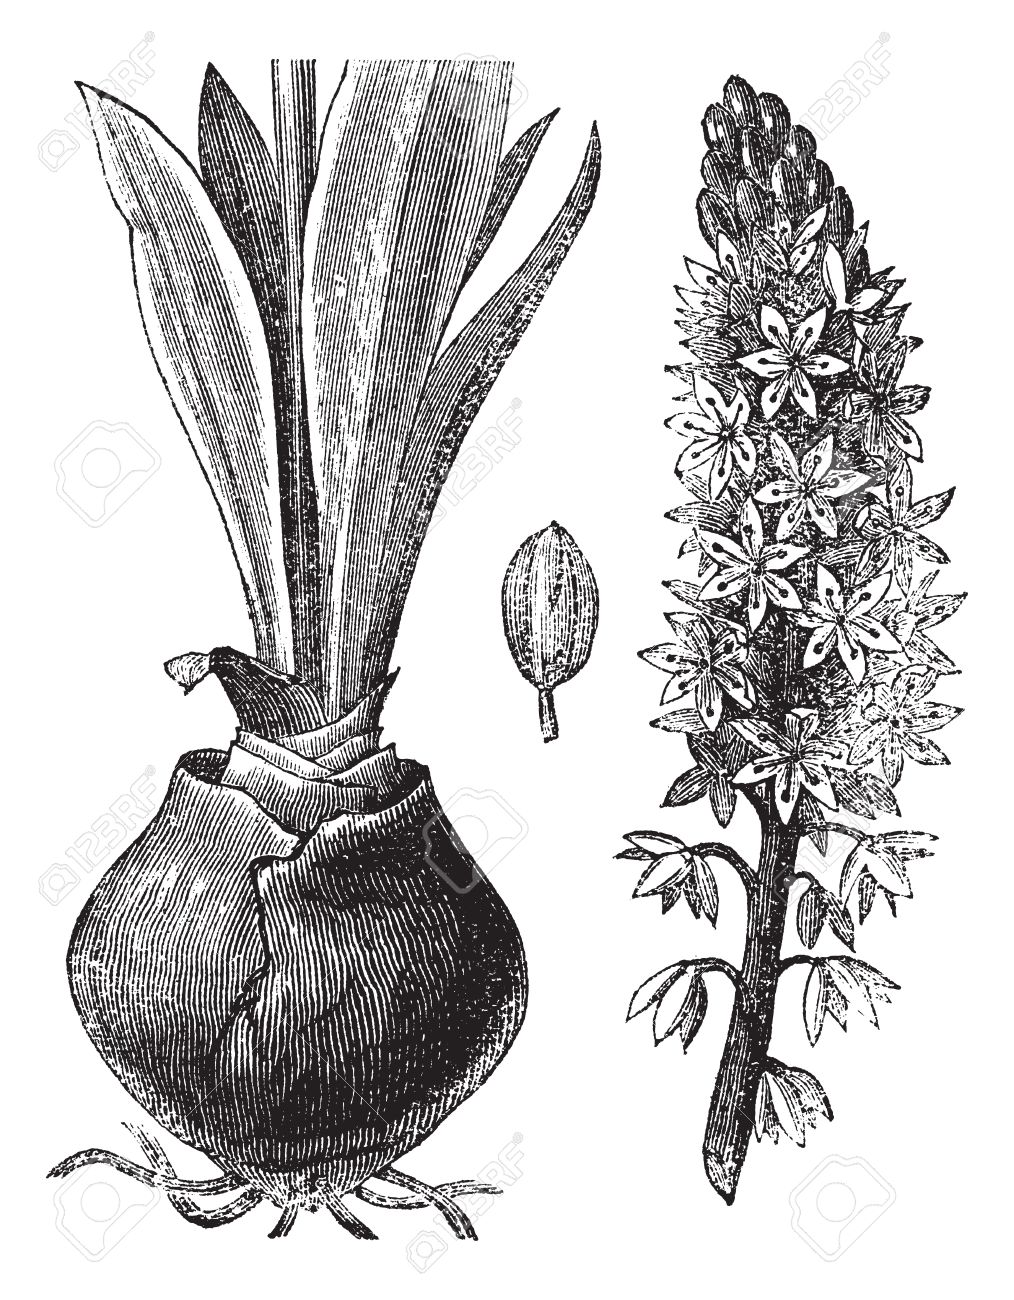 Sketch-of-Squill-plant